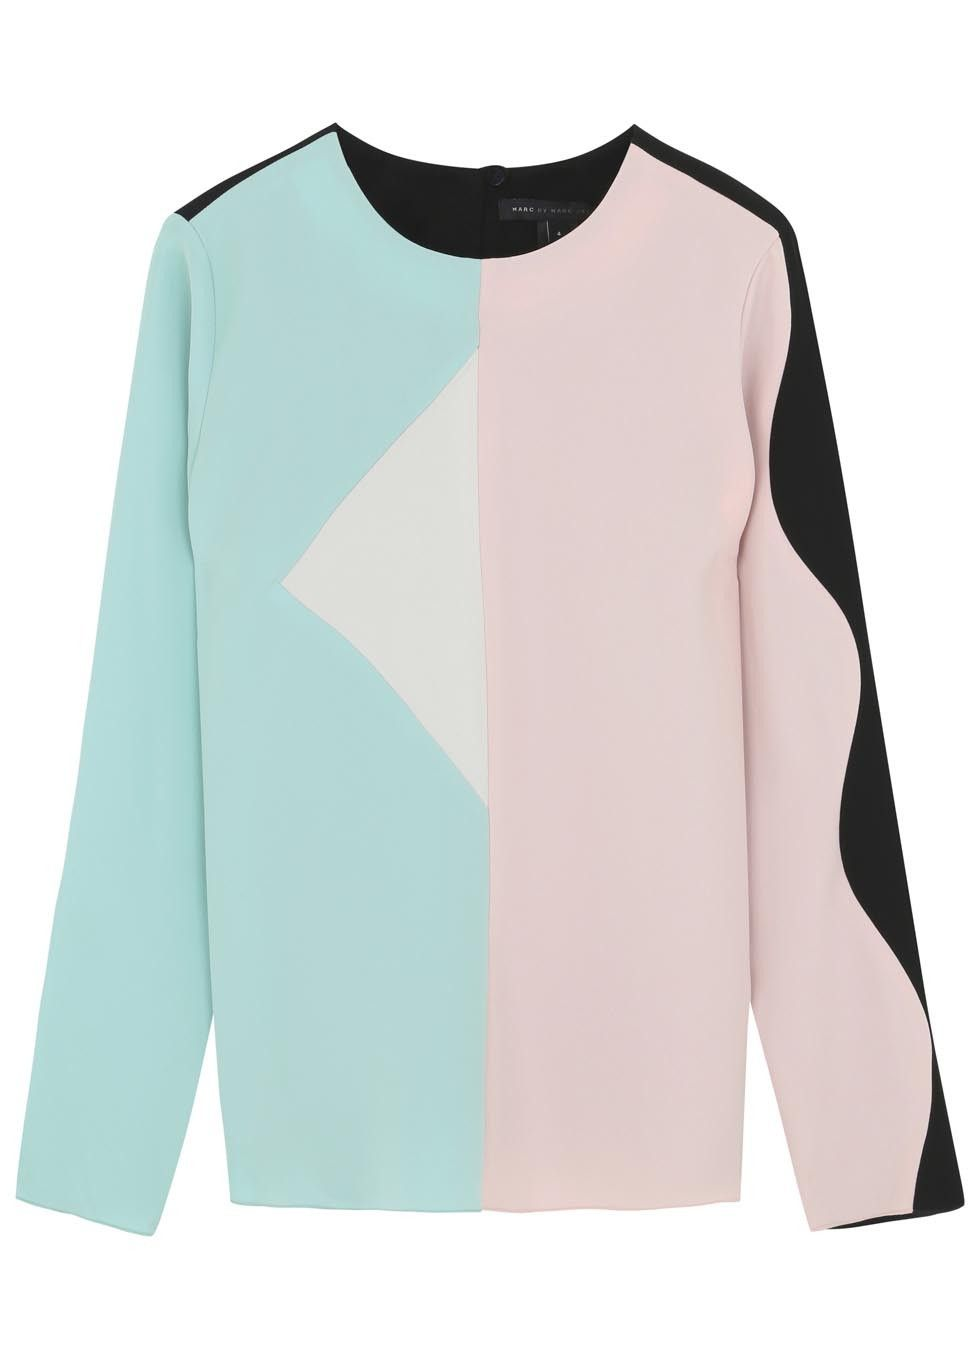 Marc by Marc Jacobs multicoloured crepe top Button fastening keyhole back Slips on 100% polyester